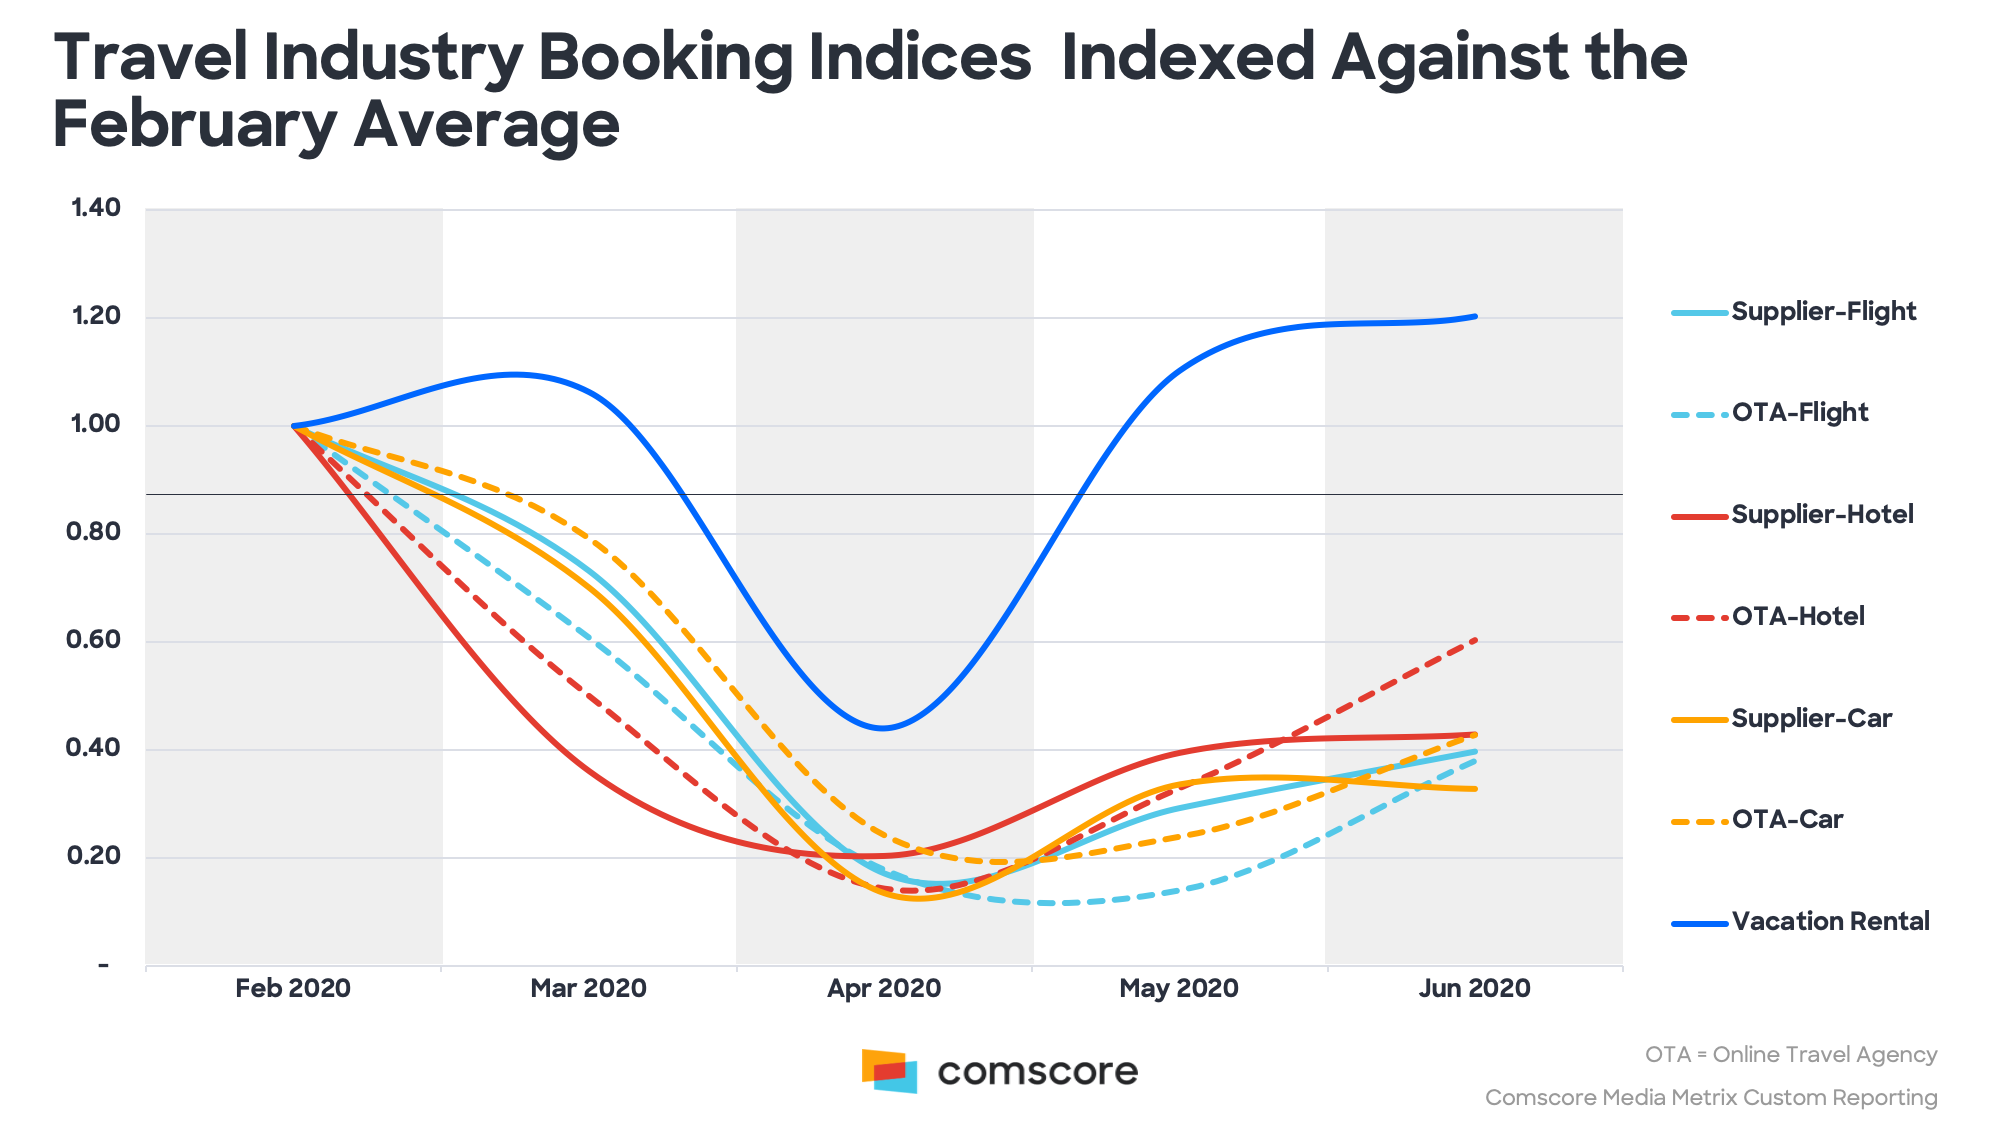 Travel Industry Booking Indices Indexed Against February Average